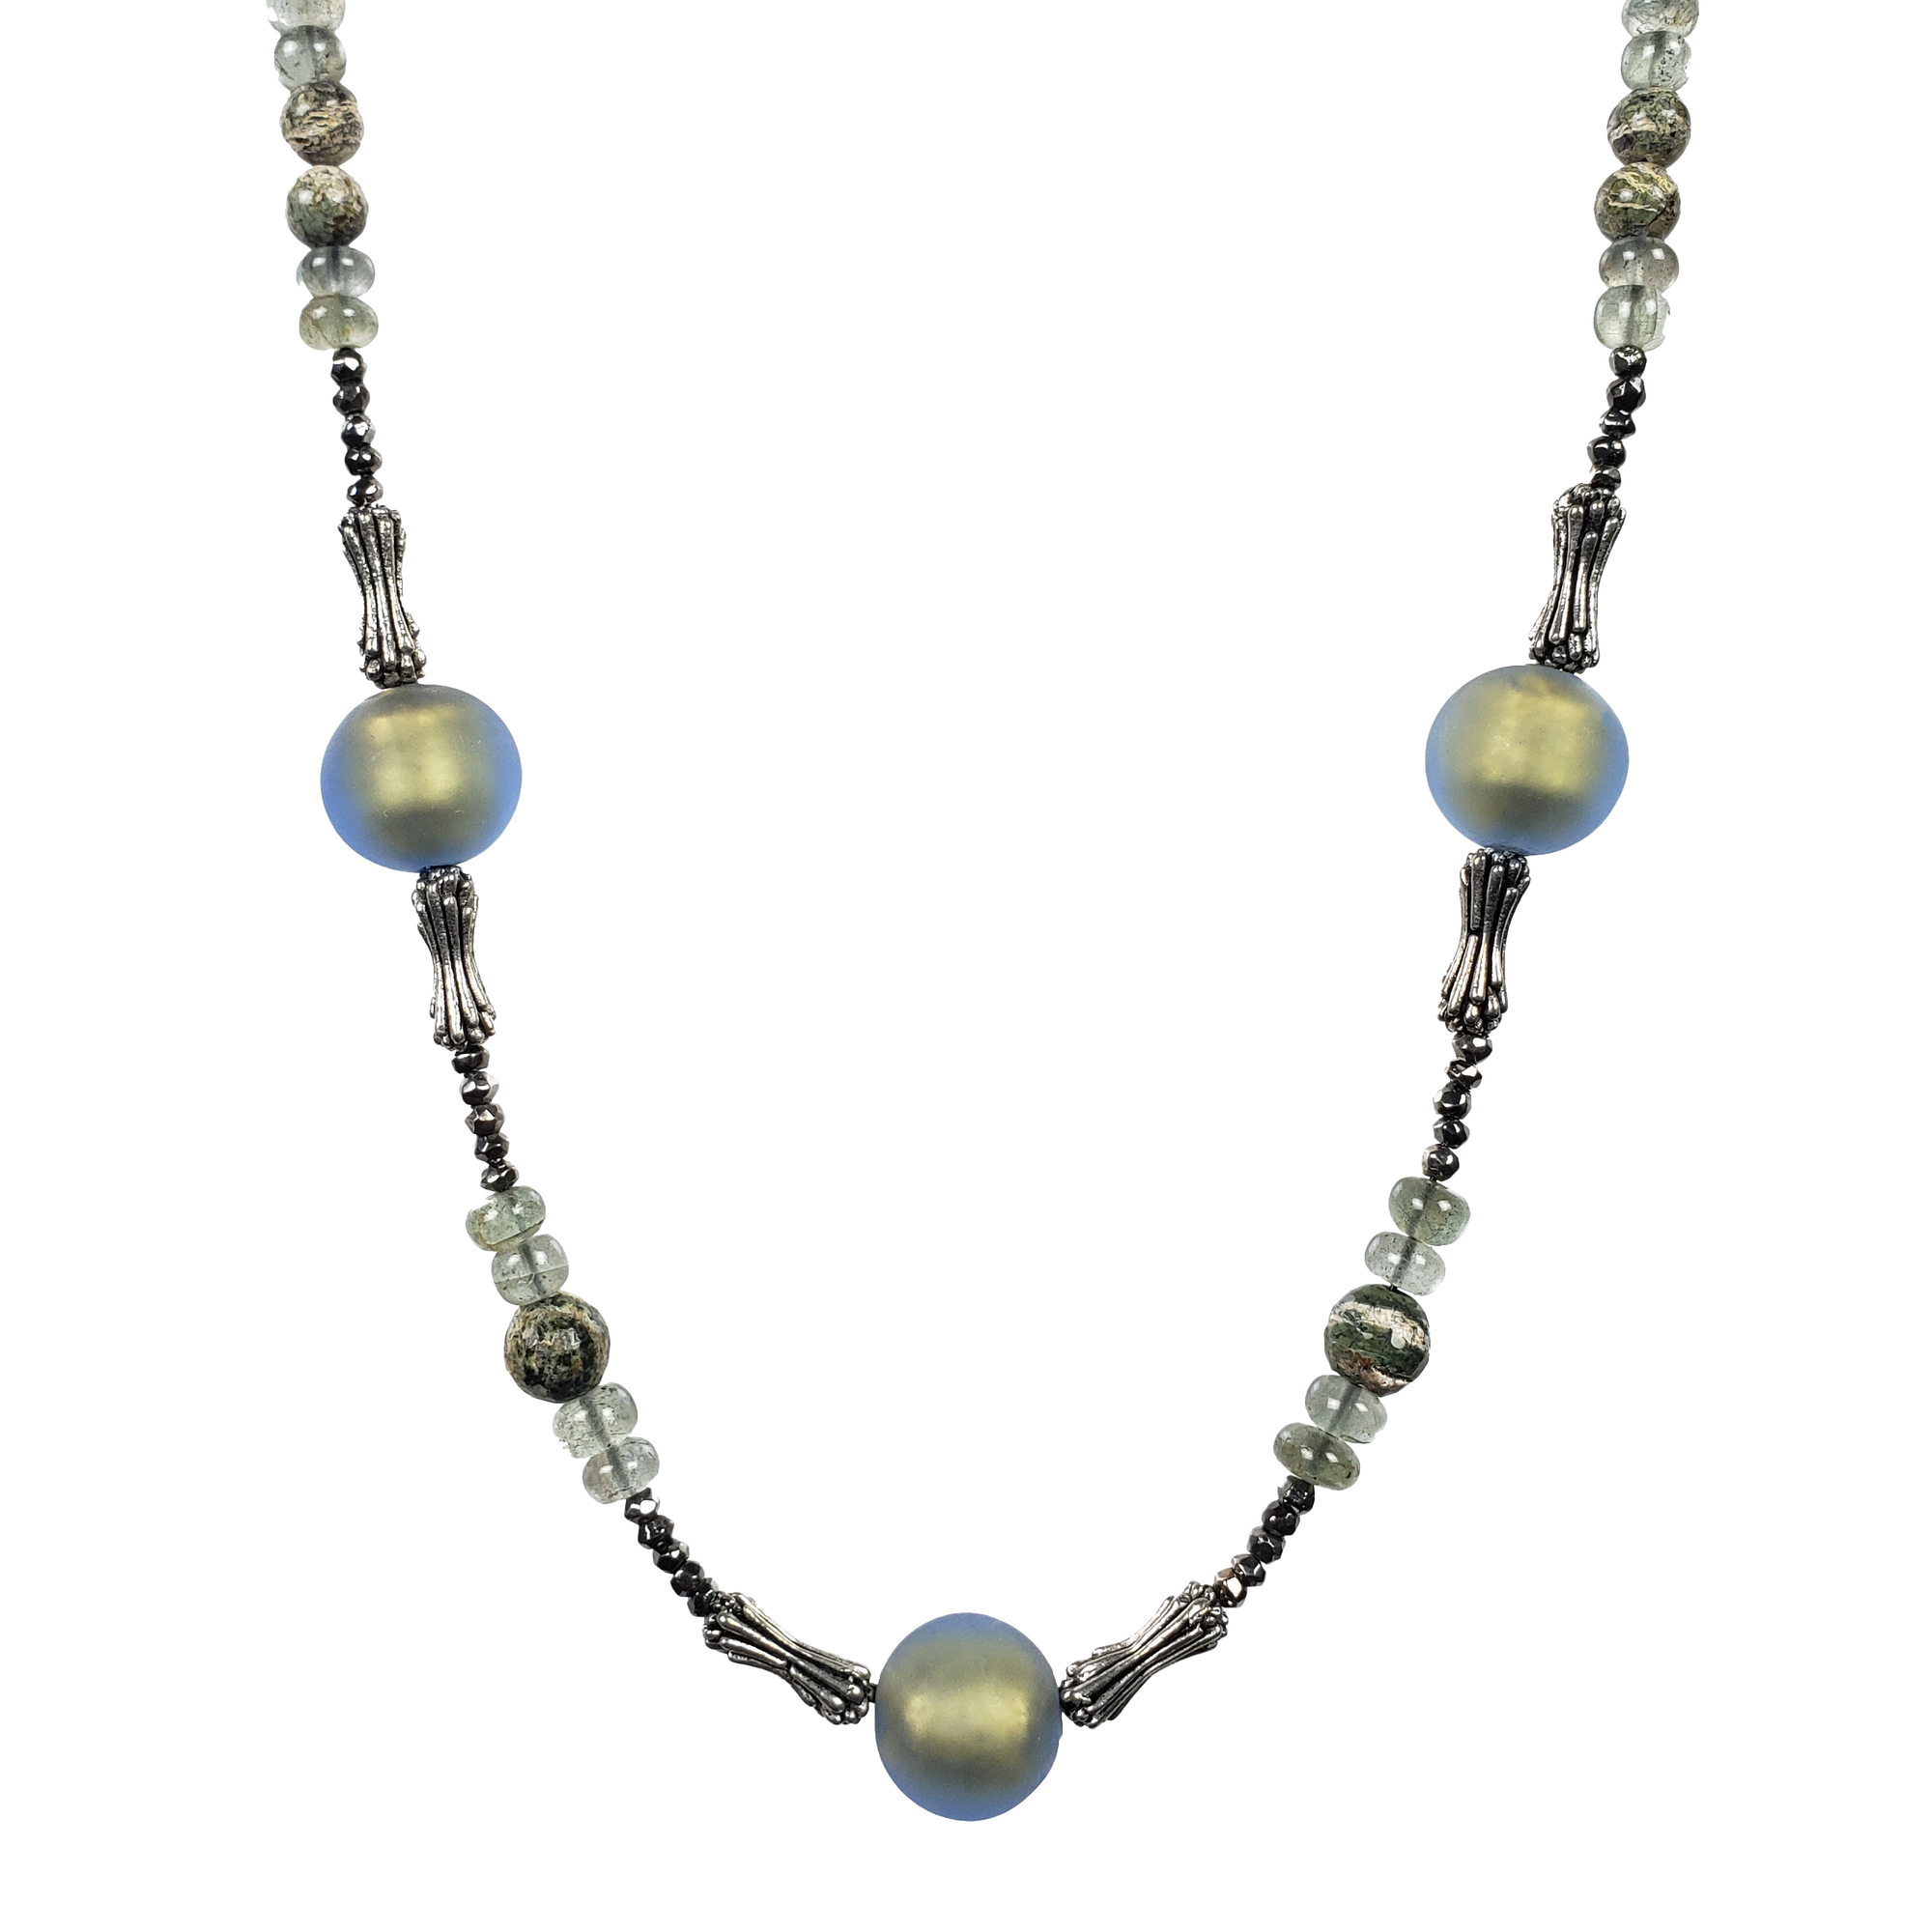 Zebra Stone, Moss Aquamarine, Venetian Glass & Pewter Necklace 2